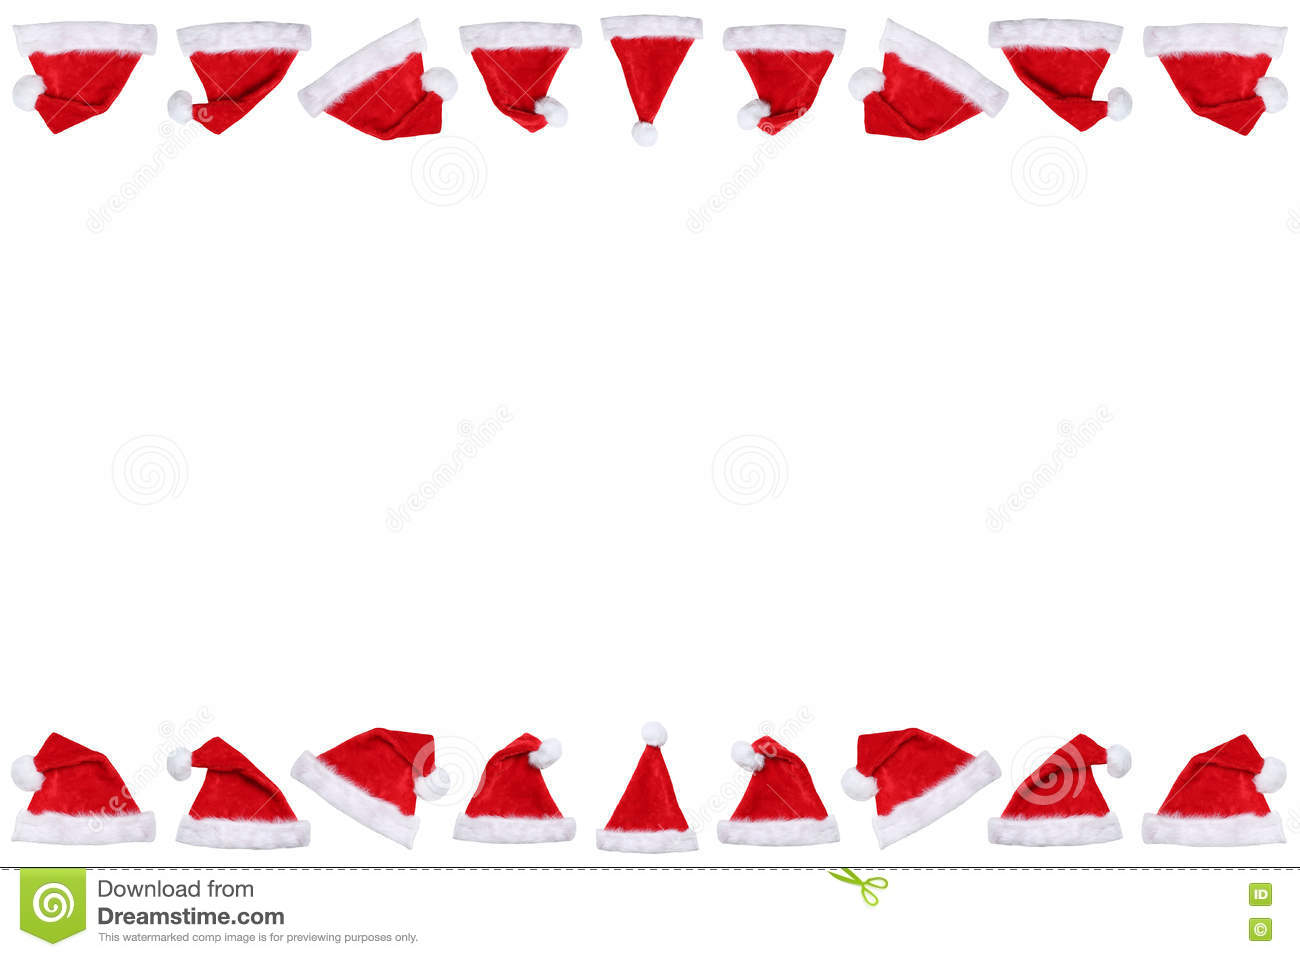 Santa Claus hat hats on Christmas border copyspace copy space wi